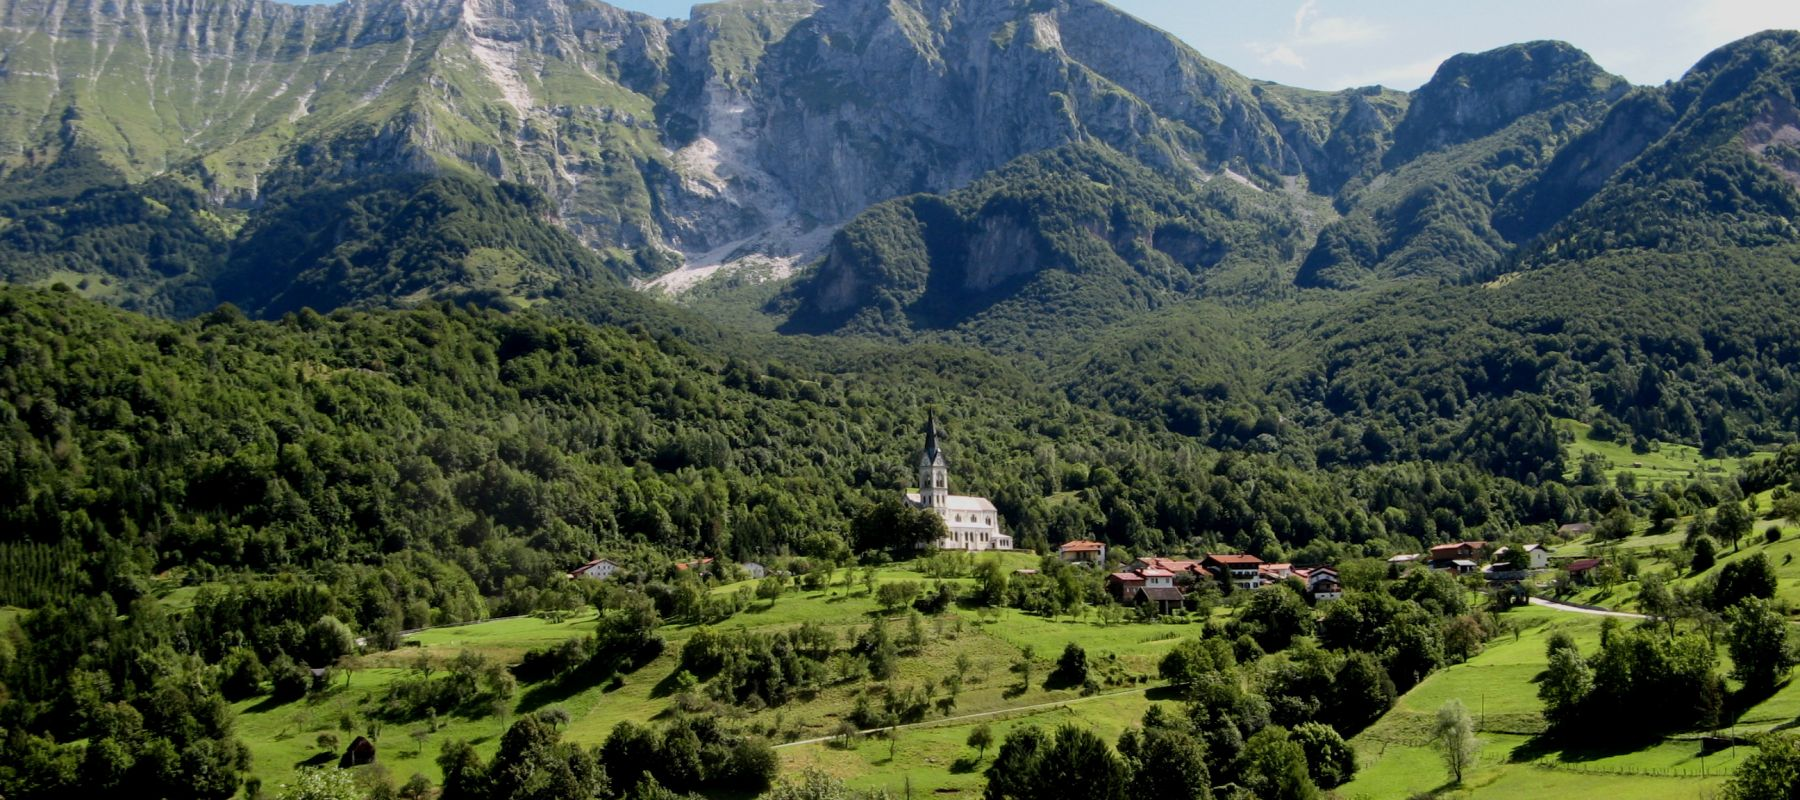 Guided Biking and Hiking Tours Alps Slovenia Lead image 1